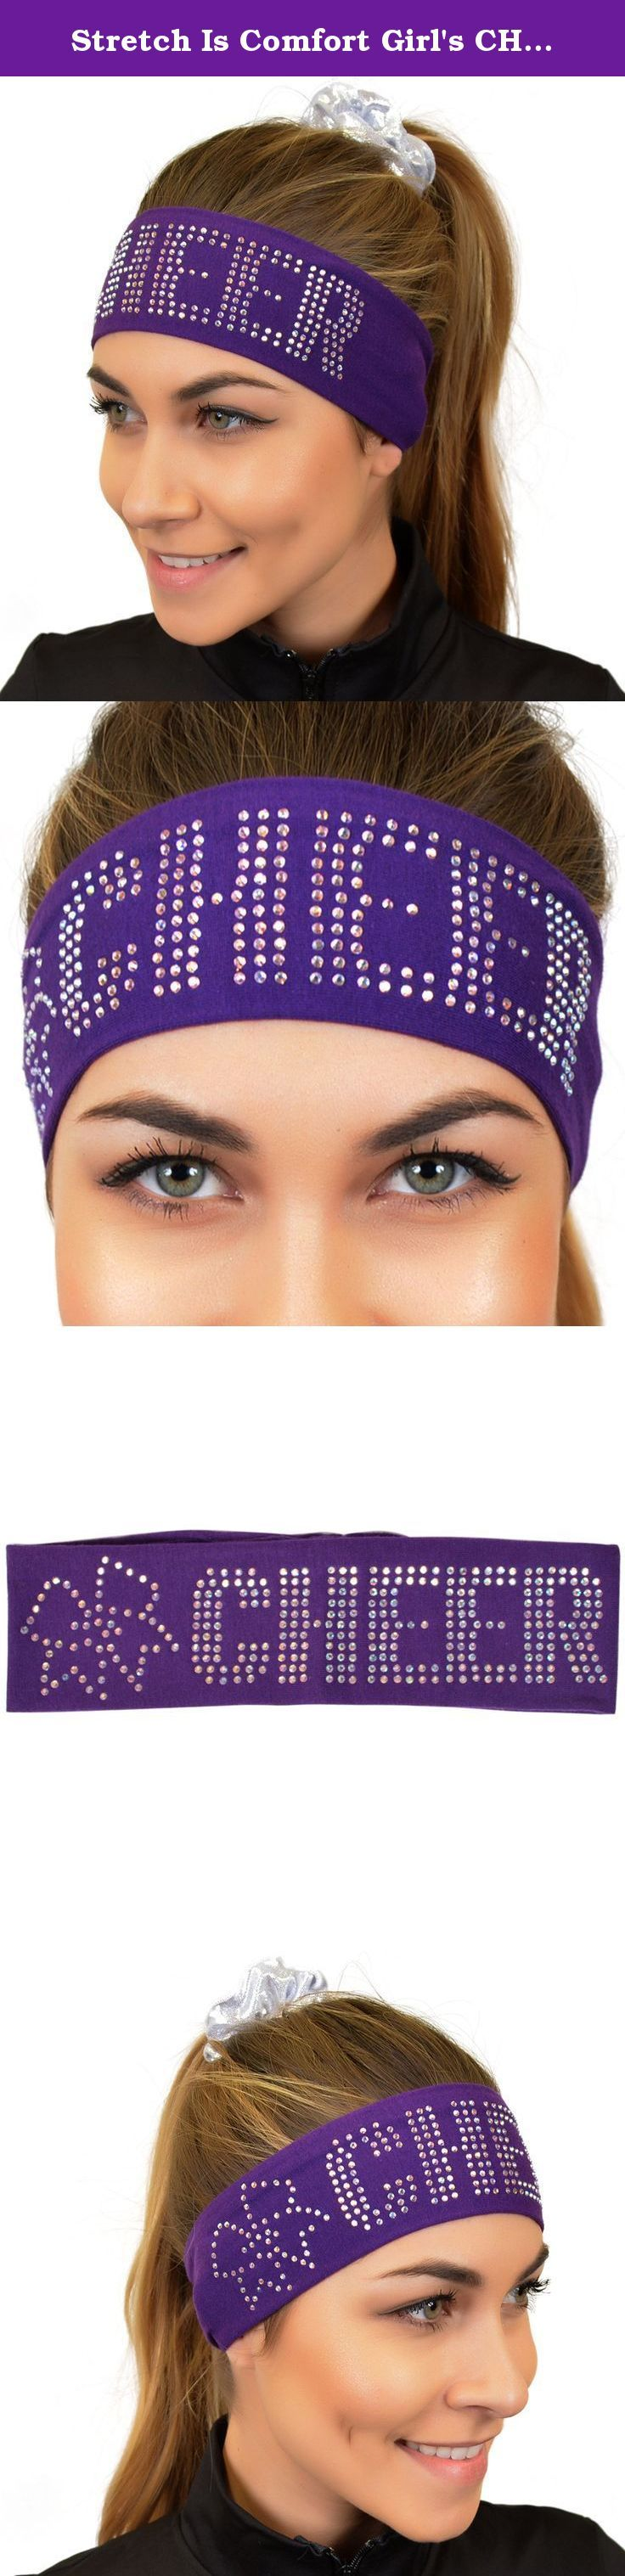 Stretch Is Comfort Girl's CHEER Rhinestone Wide Cotton Headband Purple. Don't sweat, Sparkle! Our soft, four-way stretch cotton headband is adorned with over 300 premium, glistening rhinestones. Show your Cheer spirit on the floor and off in this comfortable, tailored-fit headband made to stand out. Also features a crystal rhinestone cheer bow! Will fit ages 4 to adult. Wash with like colors, tumble dry low. 95% Cotton /5% Spandex.